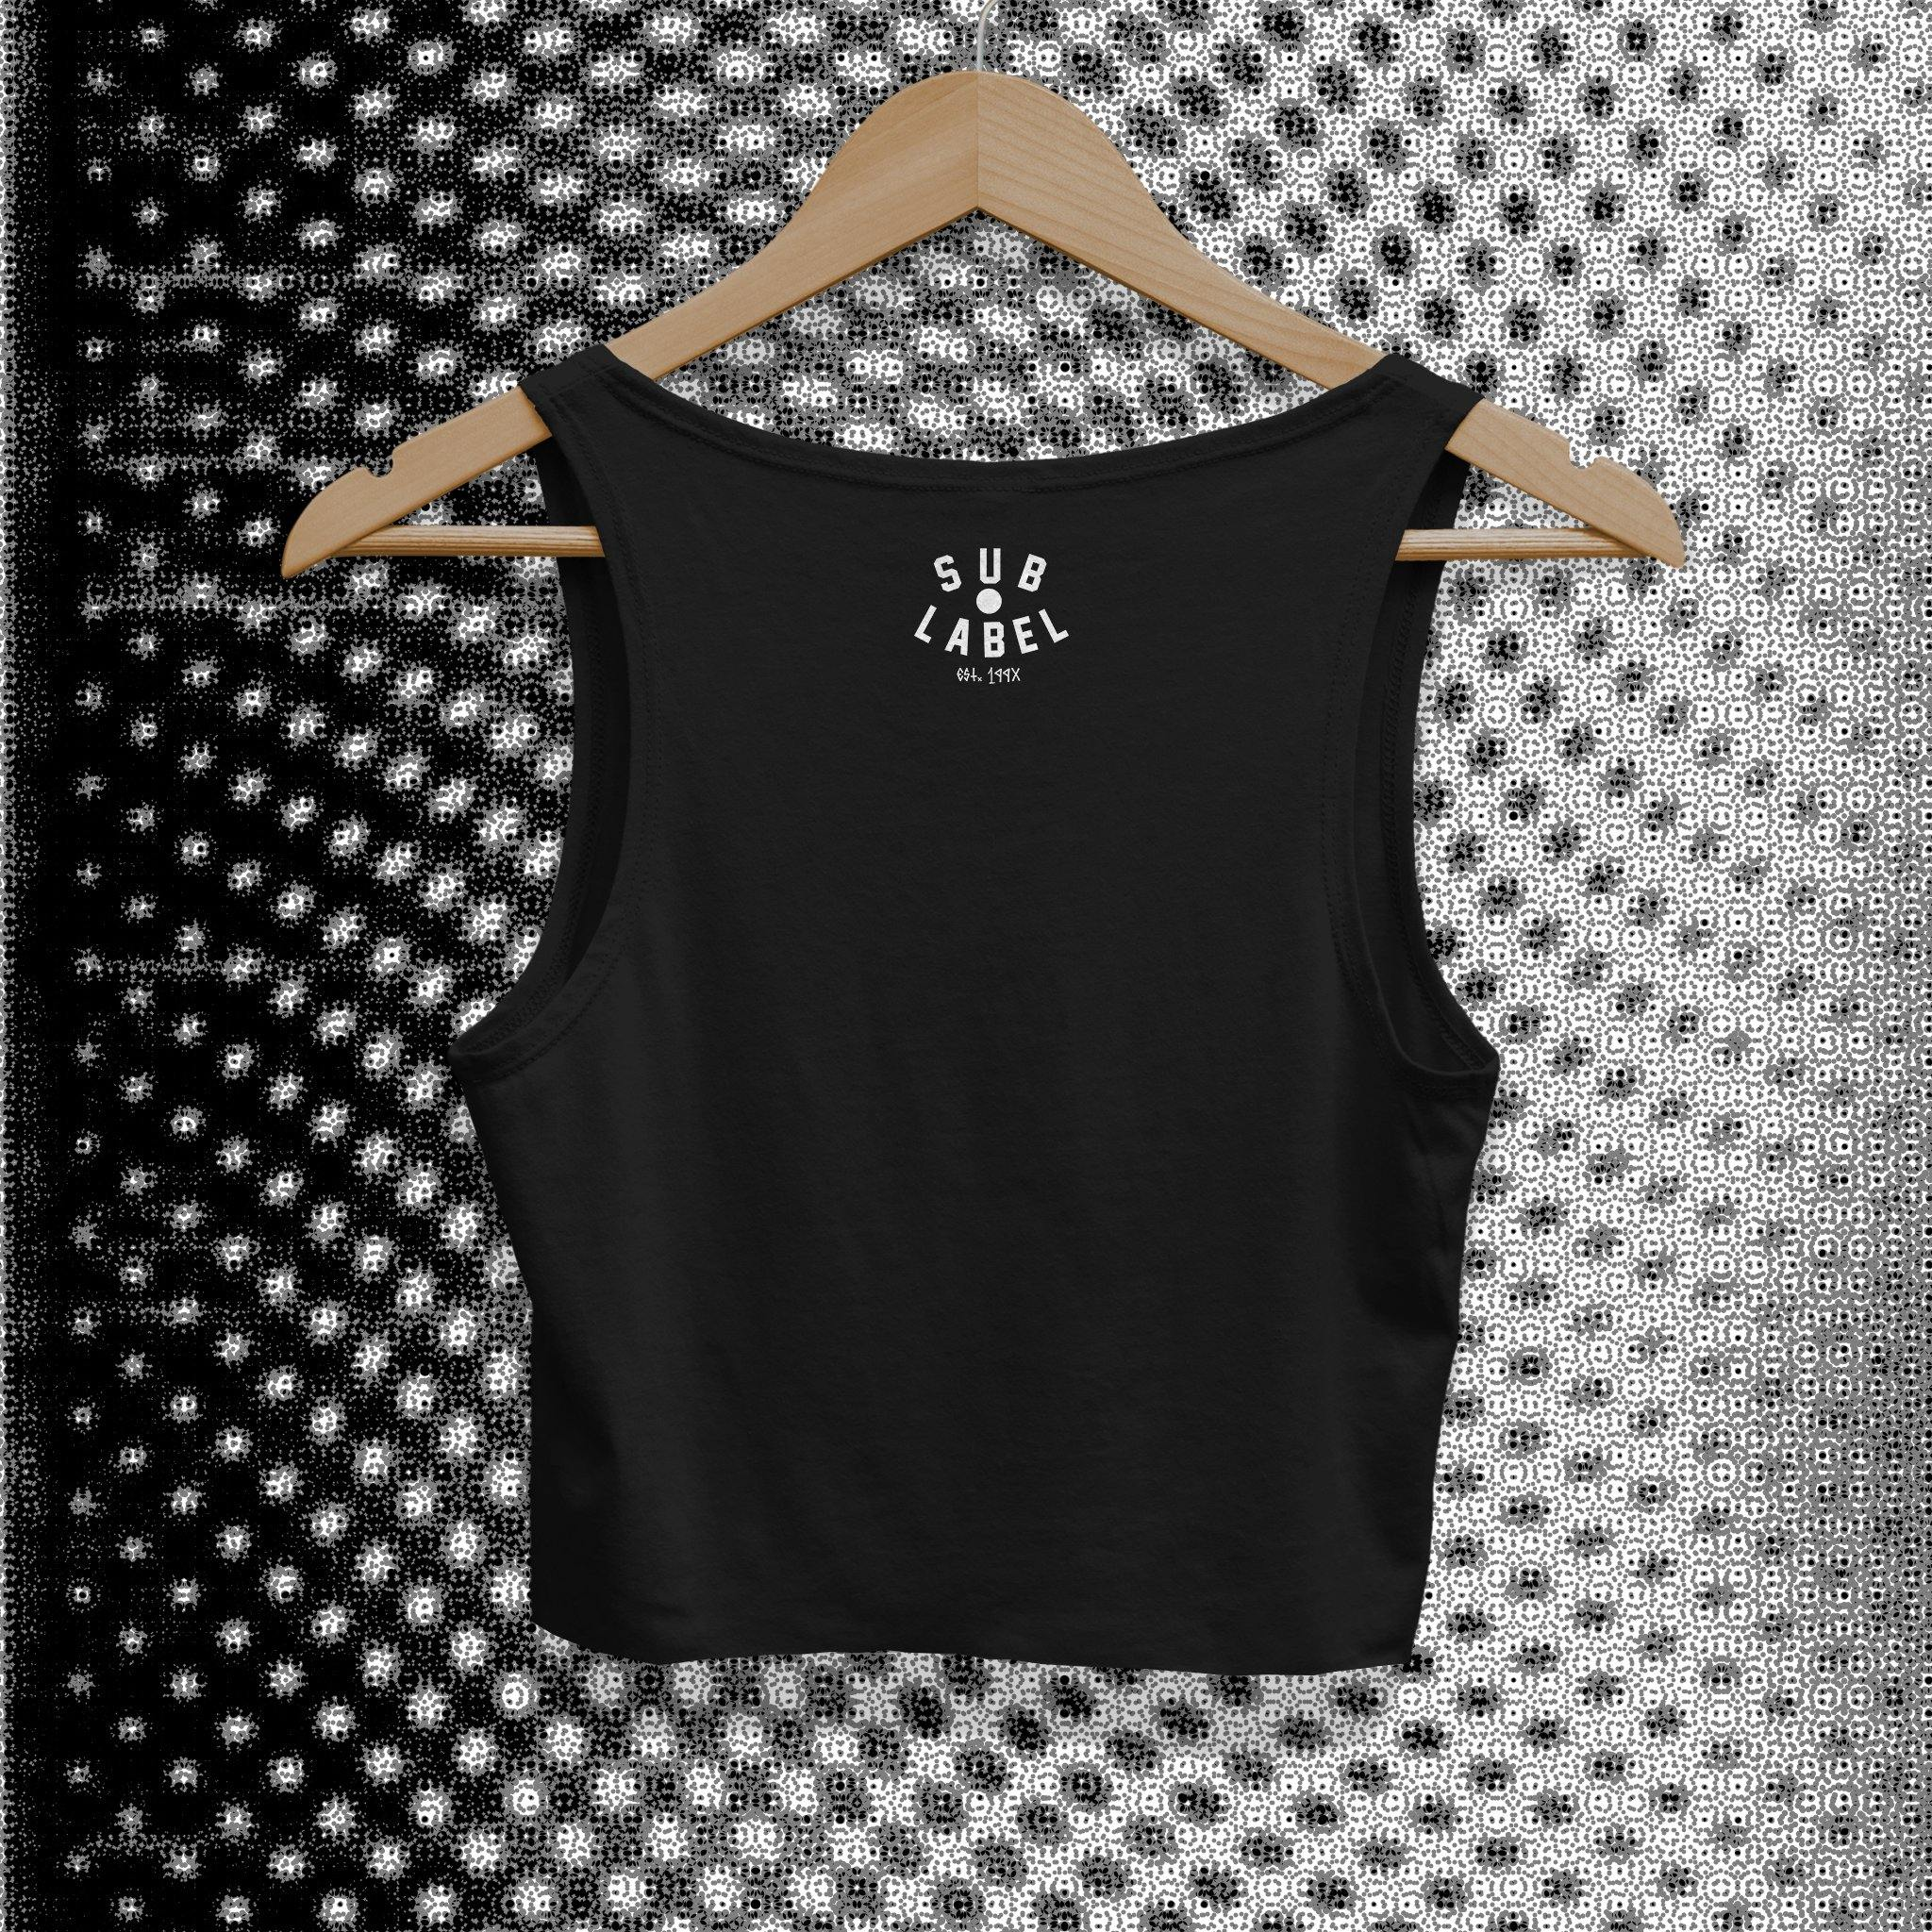 sublabel_Toronto_techno_rave_club_edm_crop_tank_cropped_raw_edge_womens_female_black_back